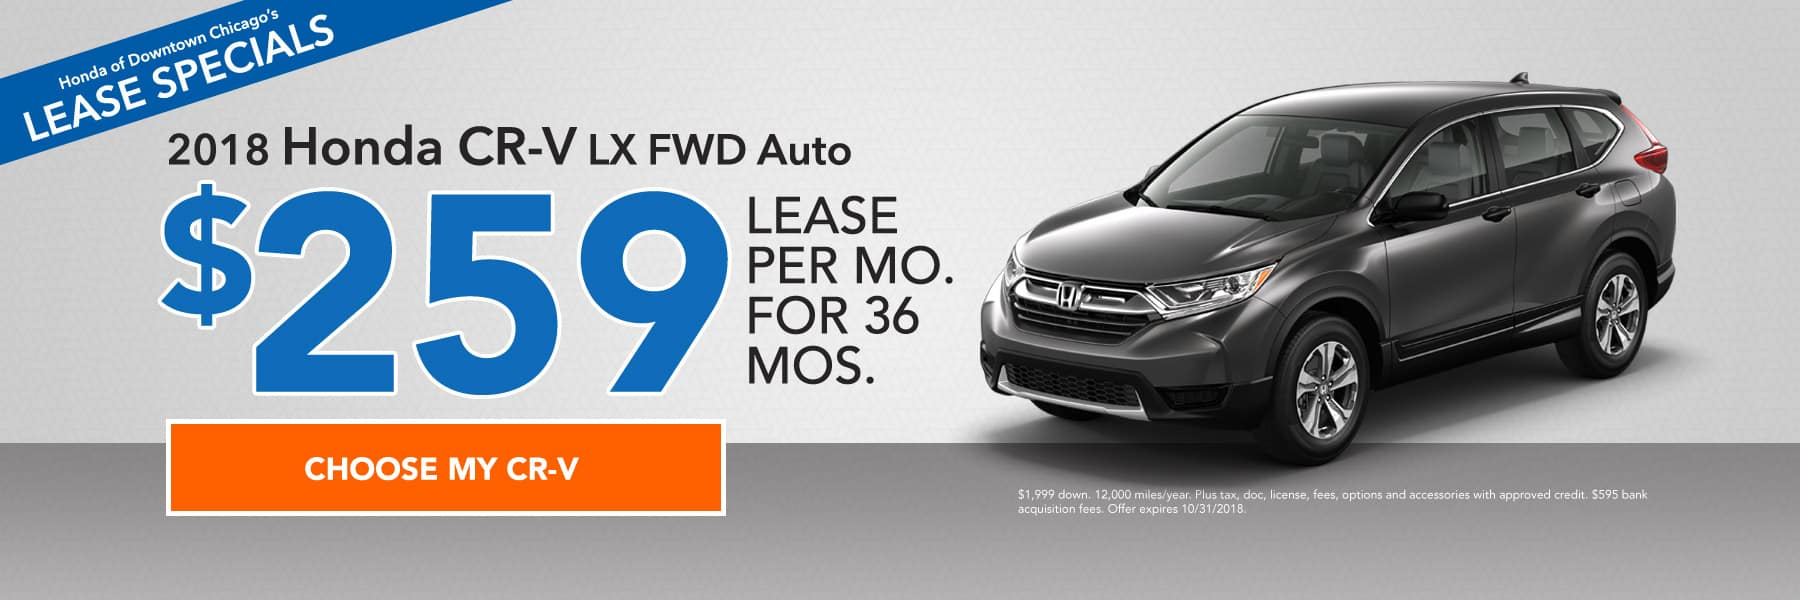 Lease specials - 2018 Honda CR-V LX FWD Auto - Lease for $259/month for 36 months - Choose my CR-V